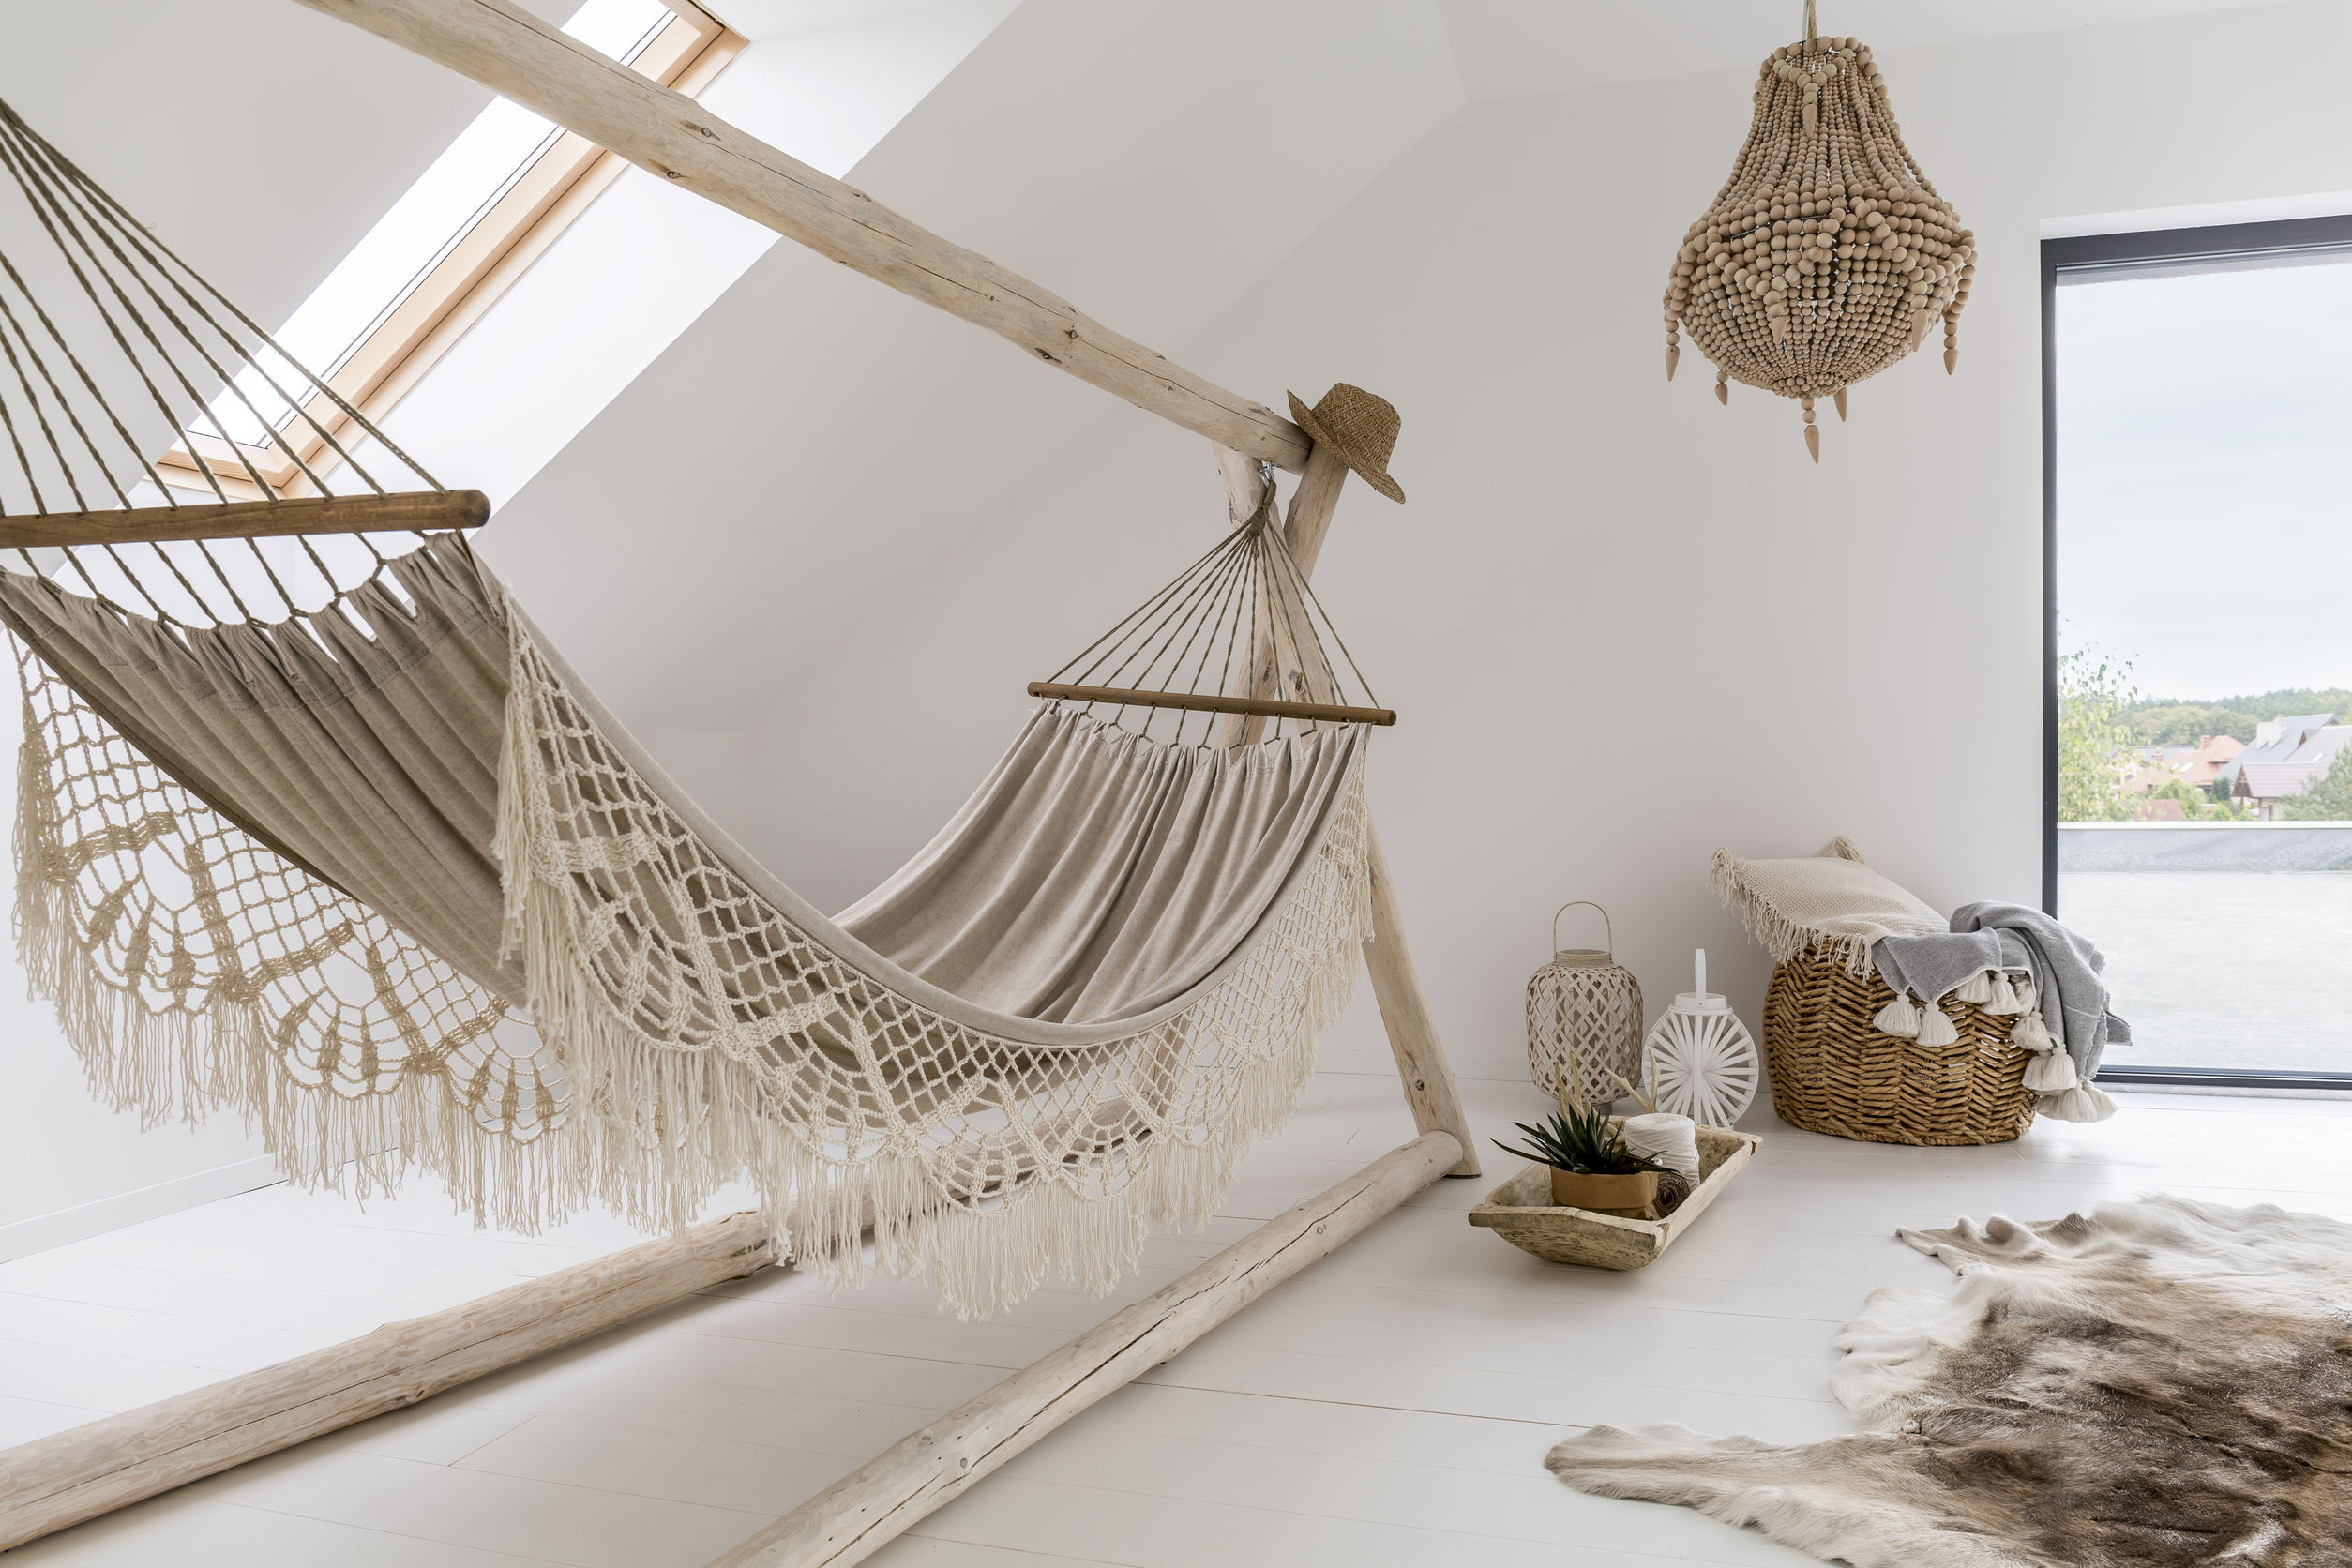 84779202 – cozy looking hammock in a stylish day room with a big chandelier